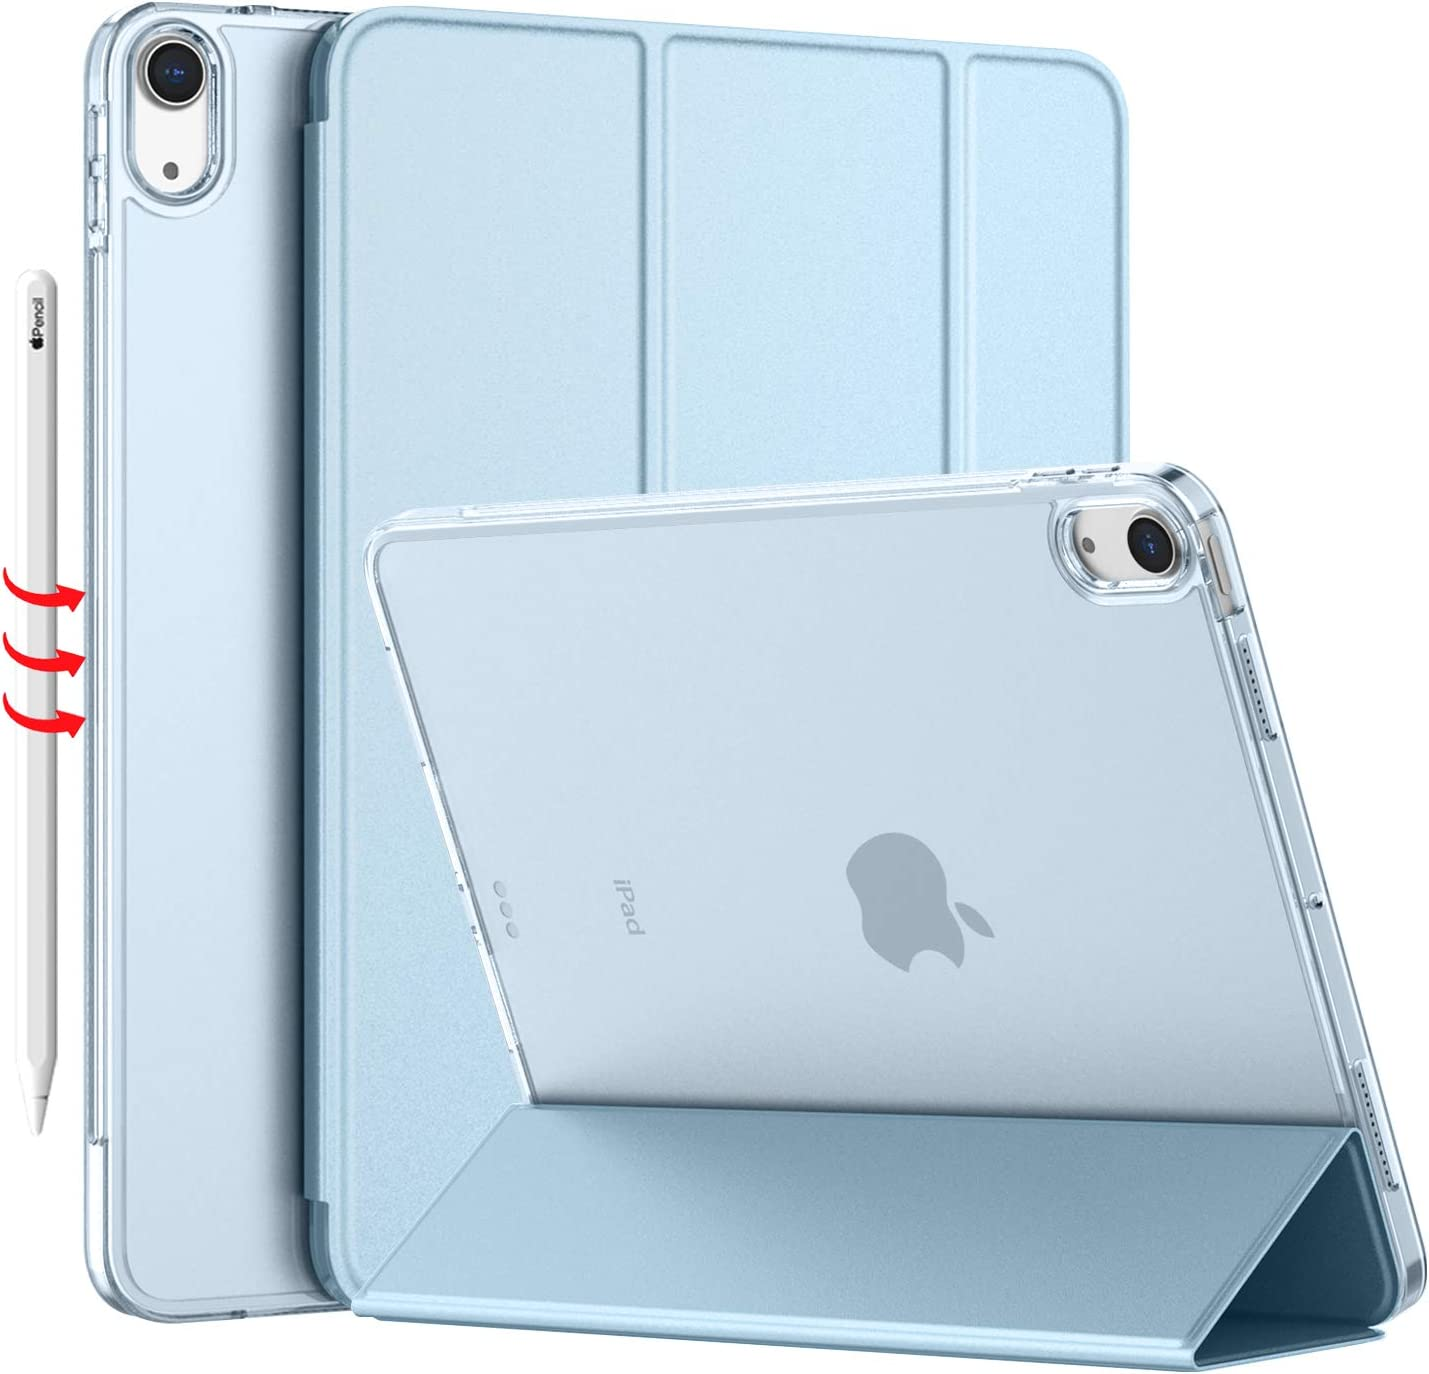 iMieet iPad Air 4 Case 2020 - iPad Air 4th Generation Case 10.9 Inch Lightweight Slim Cover with Translucent Frosted Hard Back [Support Touch ID](Sky Blue)